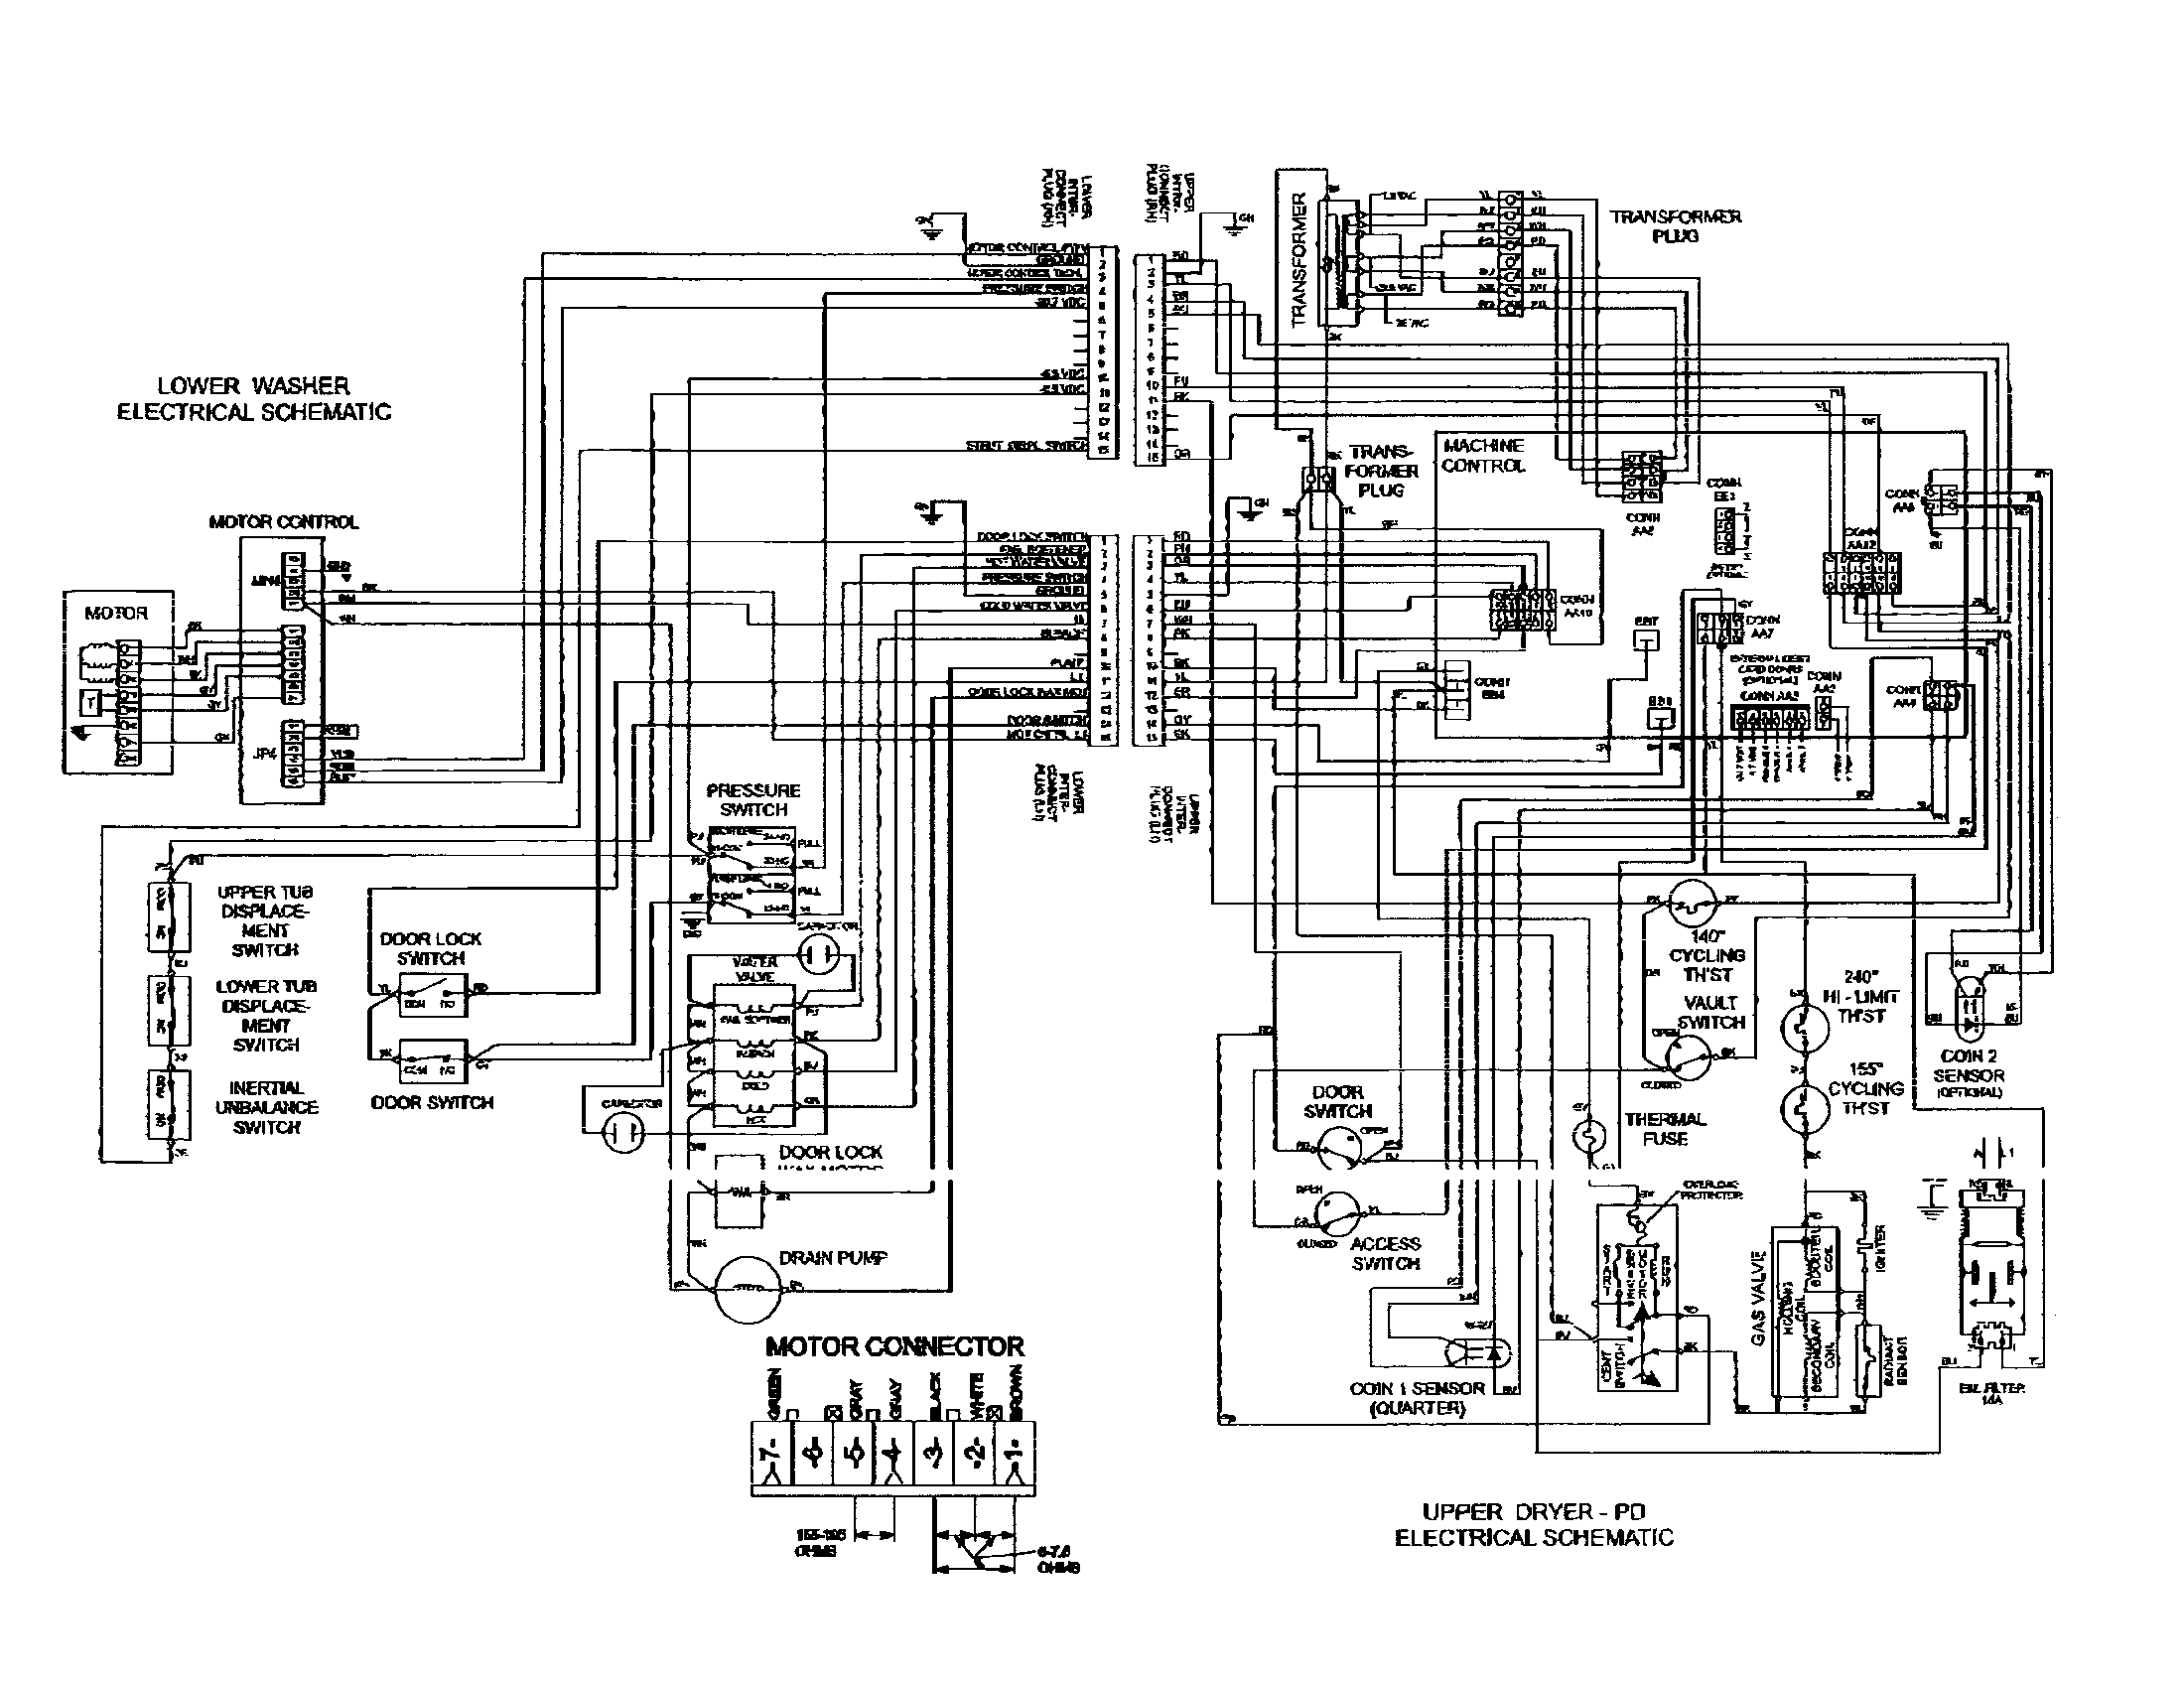 maytag centennial washer wiring diagram Download-maytag washer wiring diagram Awesome MAYTAG WASHER Parts Model mlg19pddww 15-b